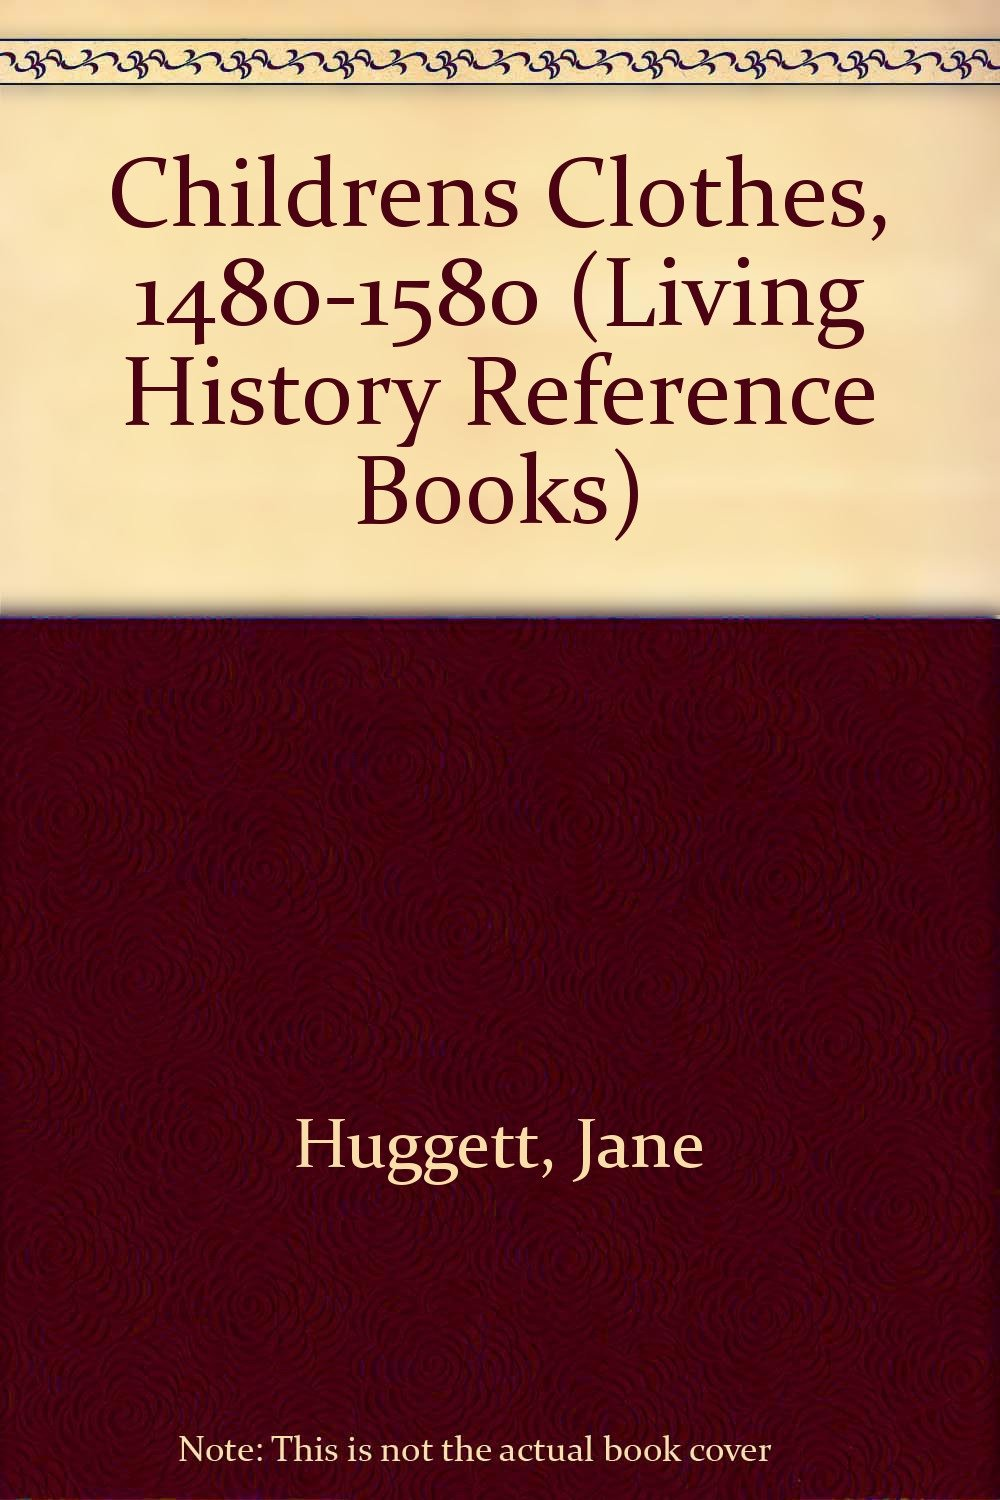 childrens-clothes-1480-1580-living-history-reference-books